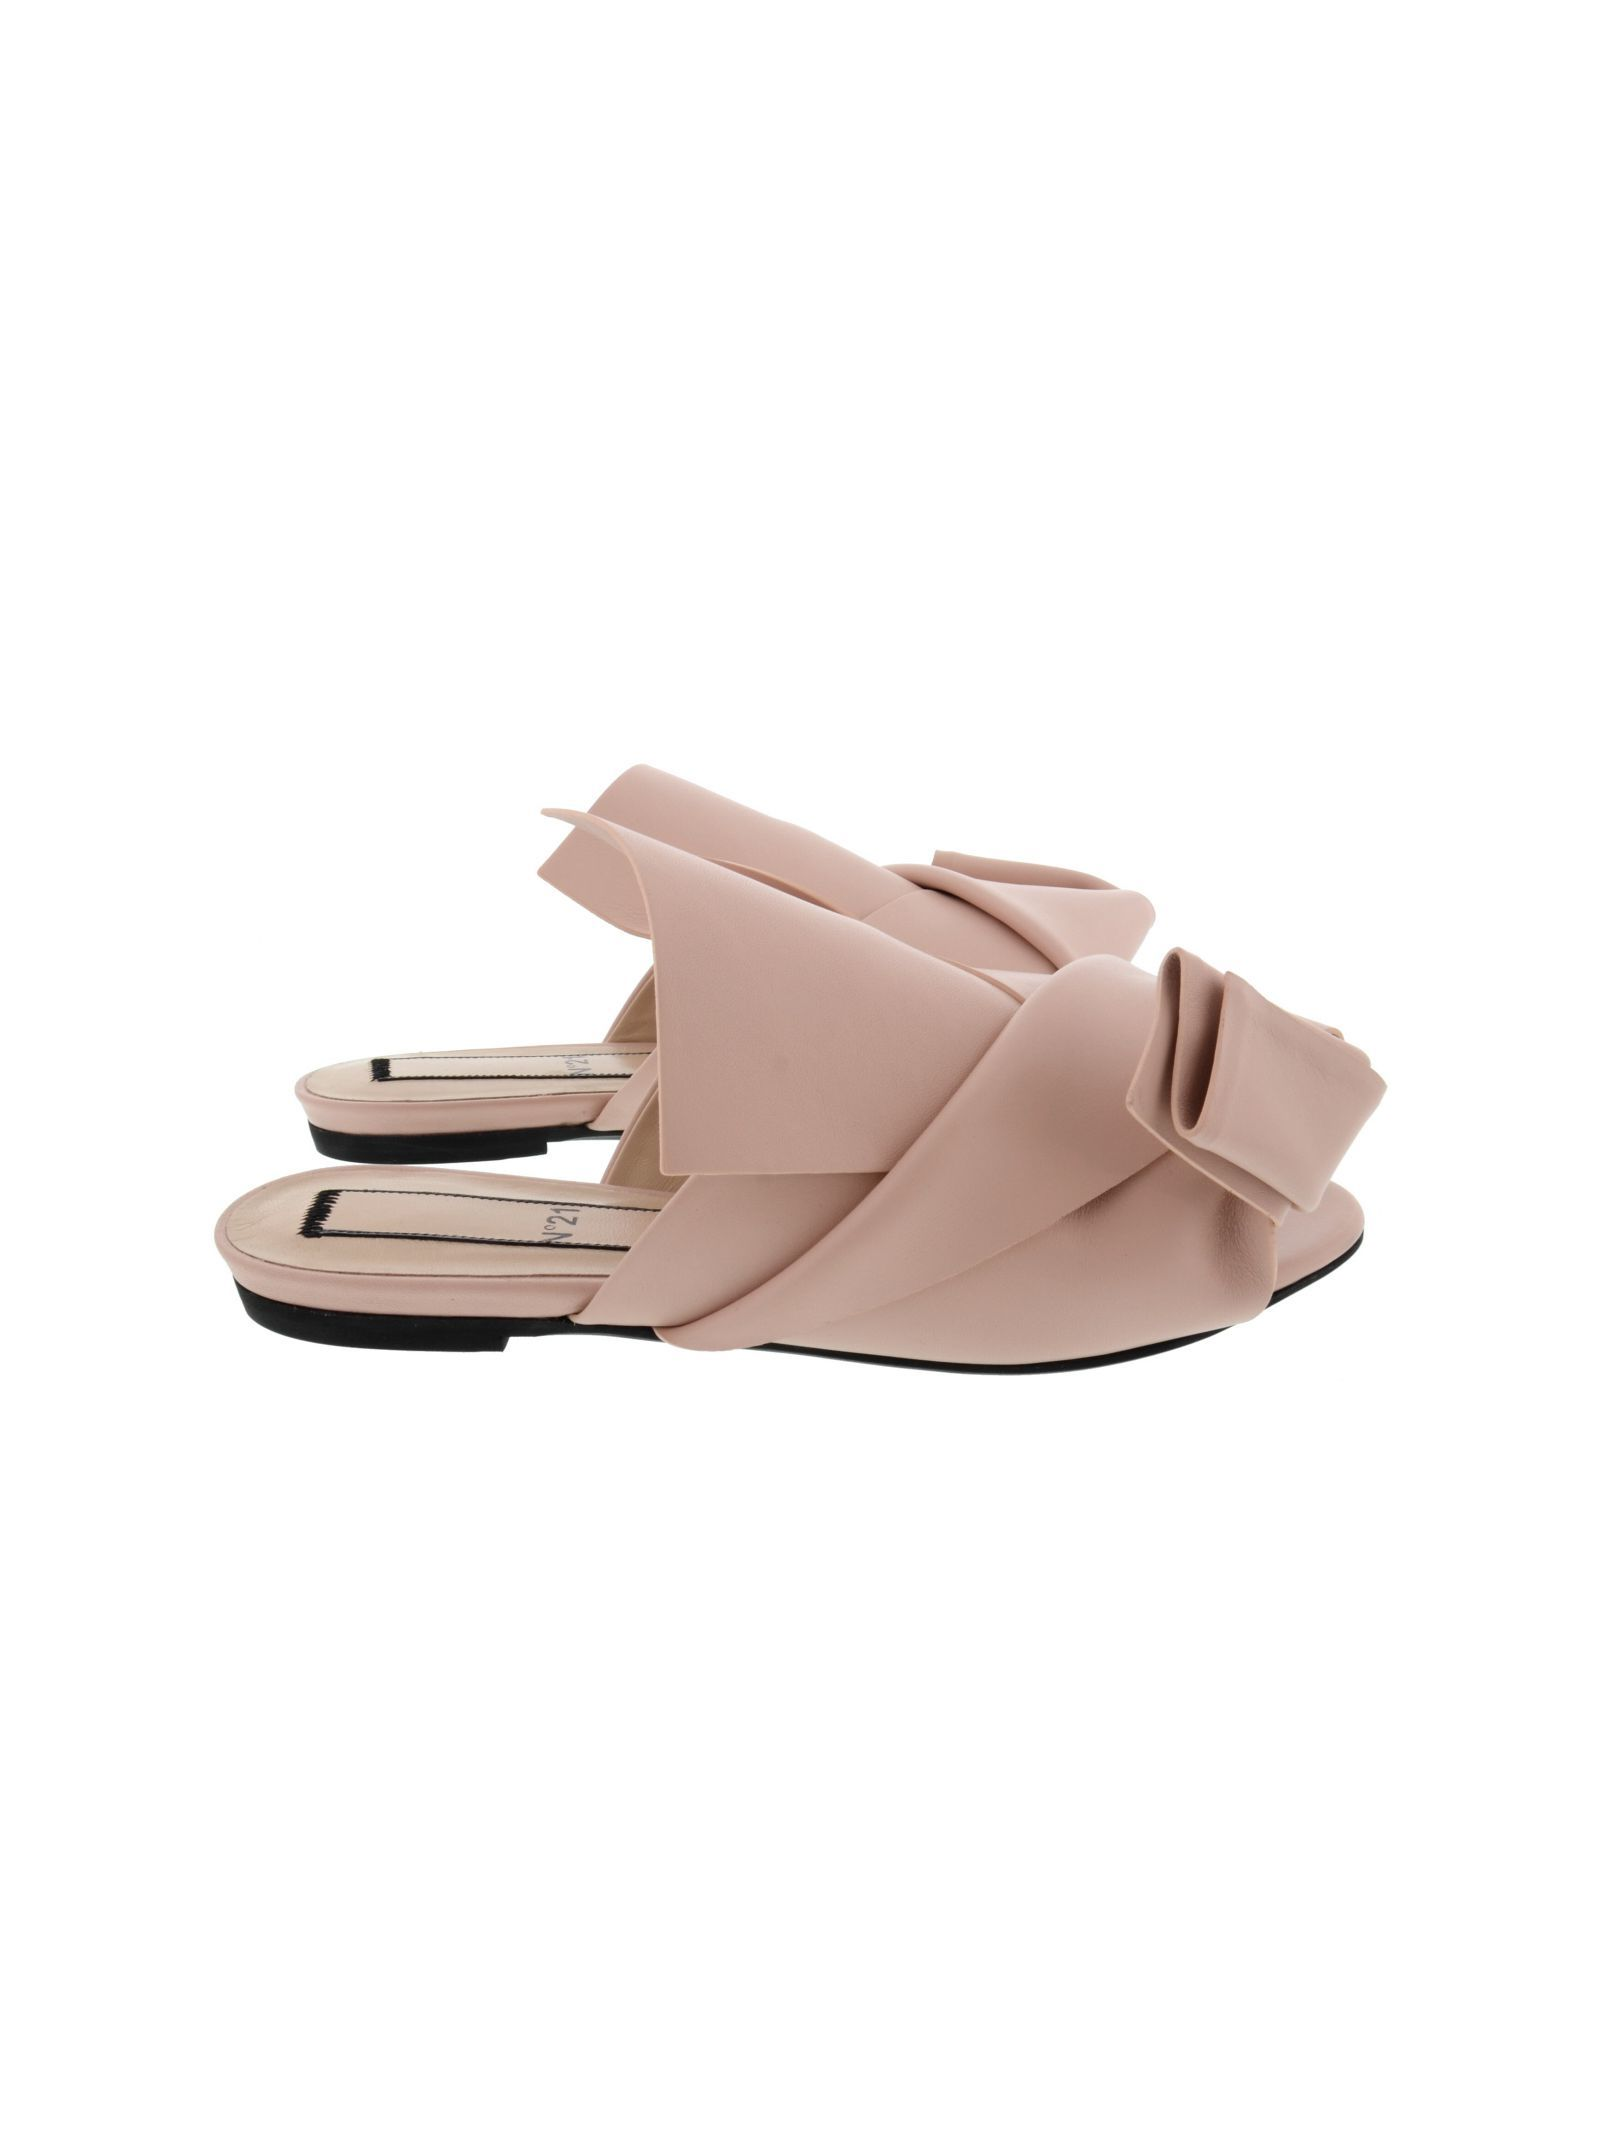 fda1a4d59b898 N°21 N21 Sandalo Knot in Pink (Nude) - Save 21%